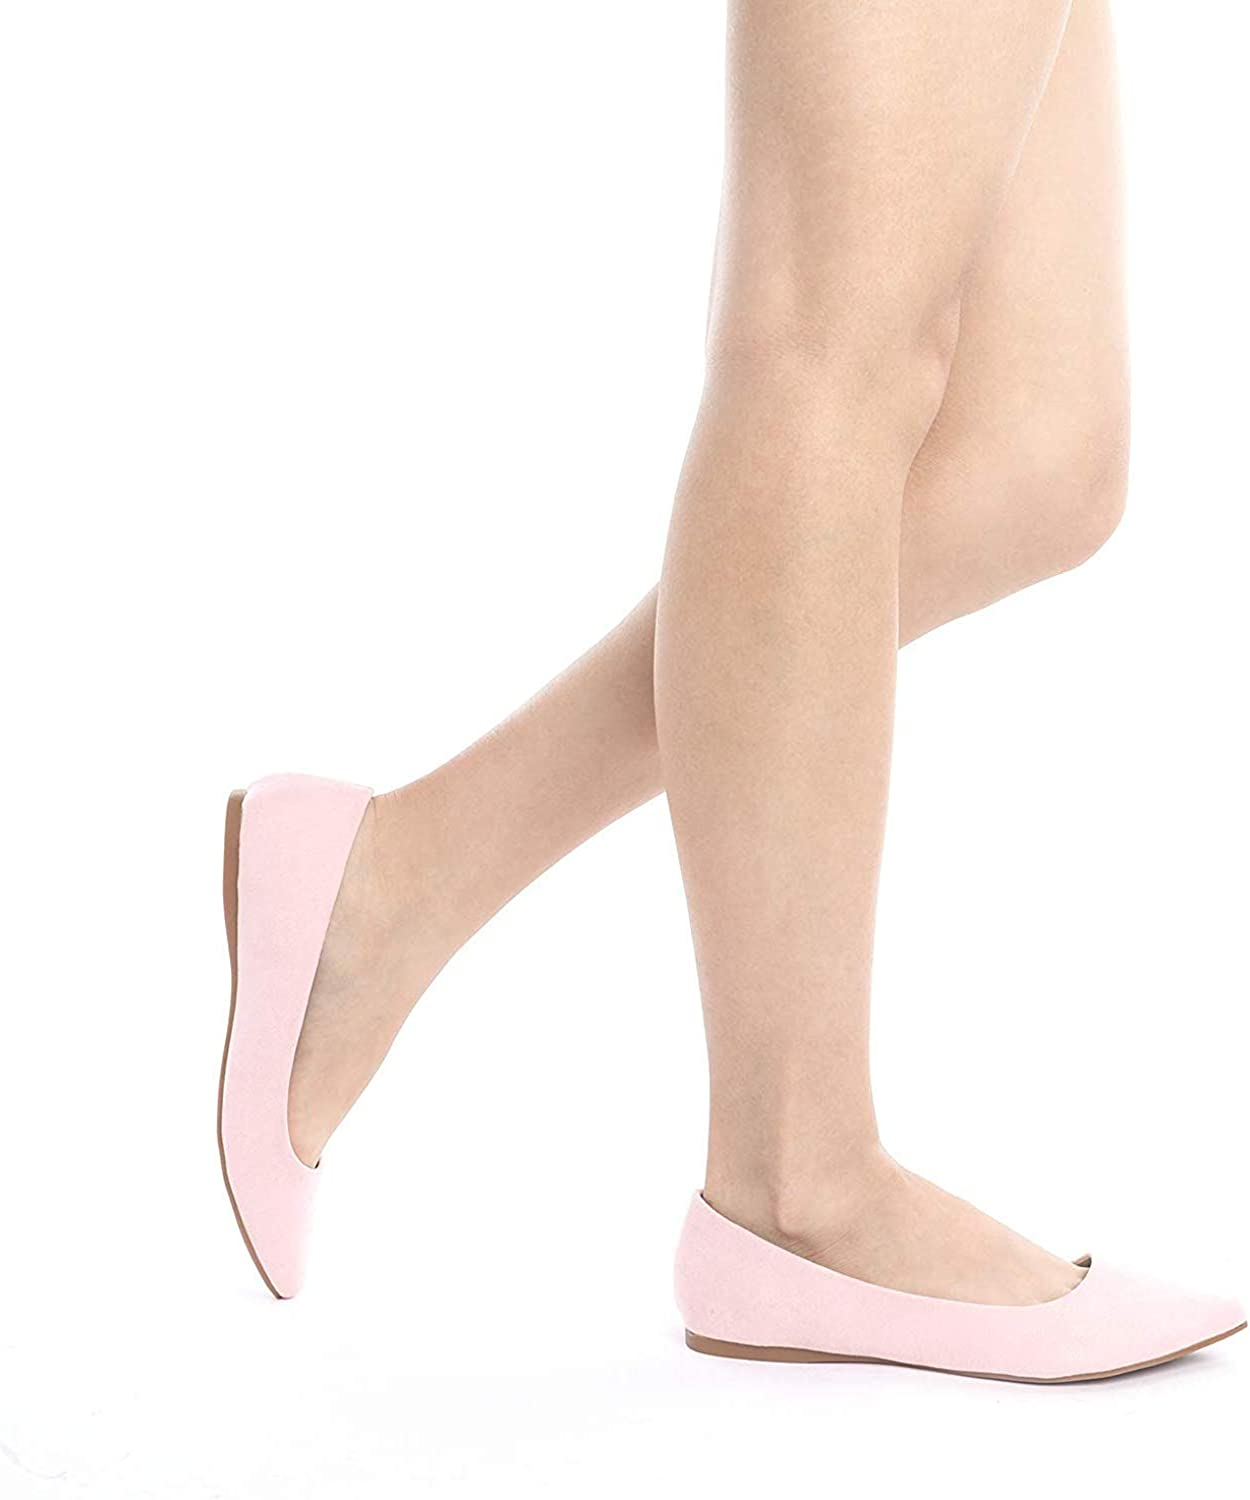 DREAM PAIRS Sole Classic Fancy Womens Casual Pointed Toe Ballet Comfort Soft Slip On Flats Shoes